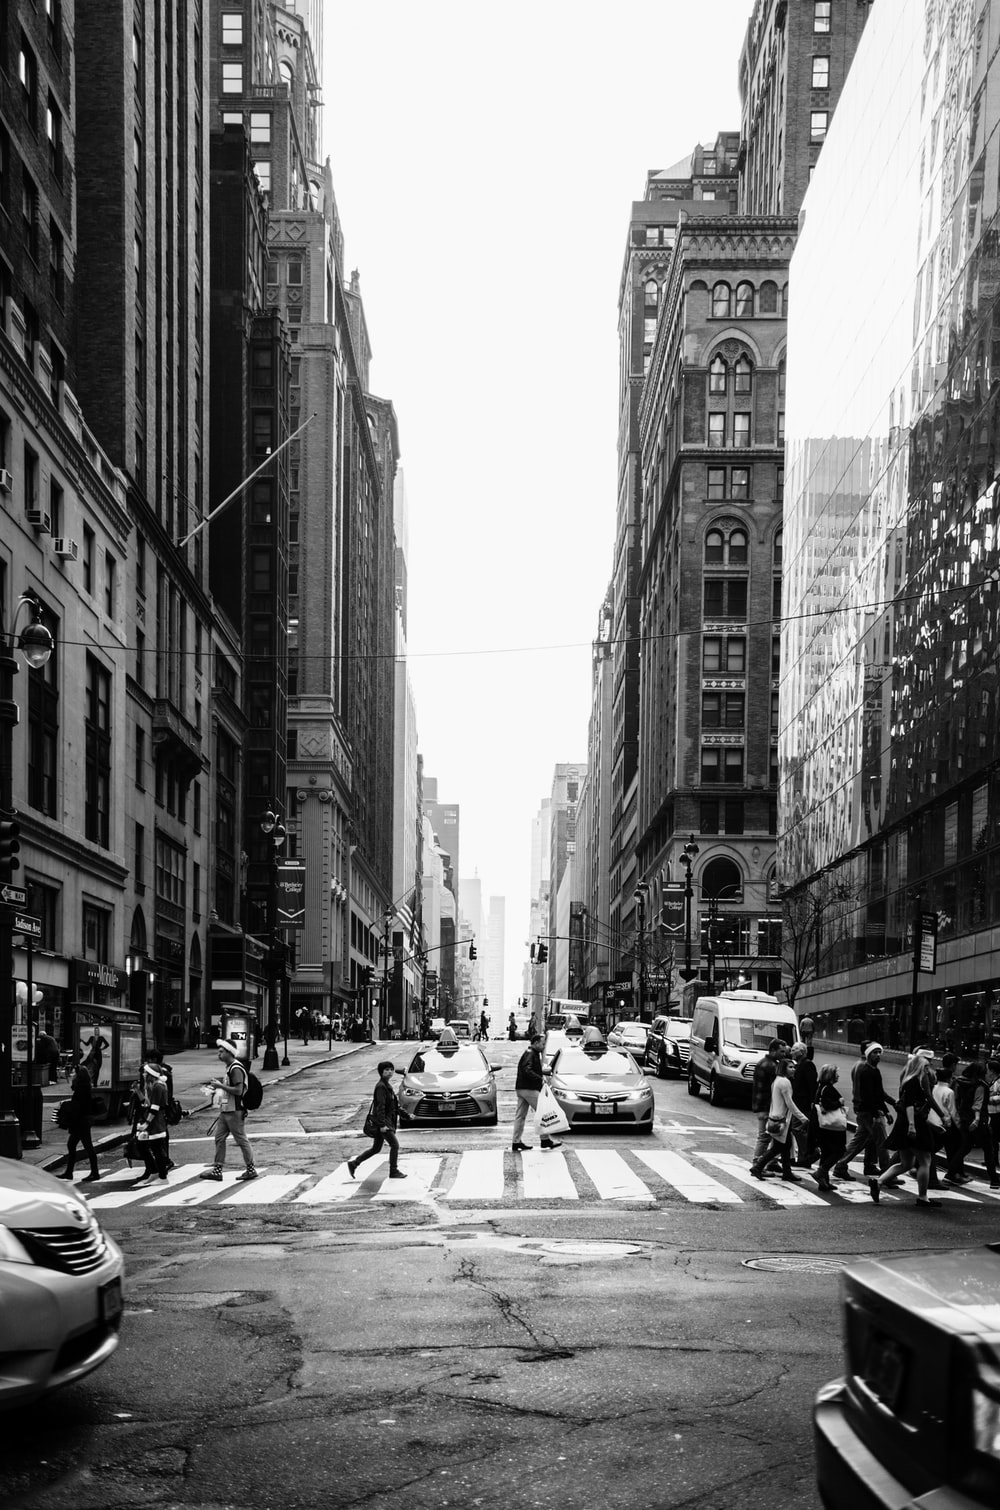 grayscale photo of people crossing the road